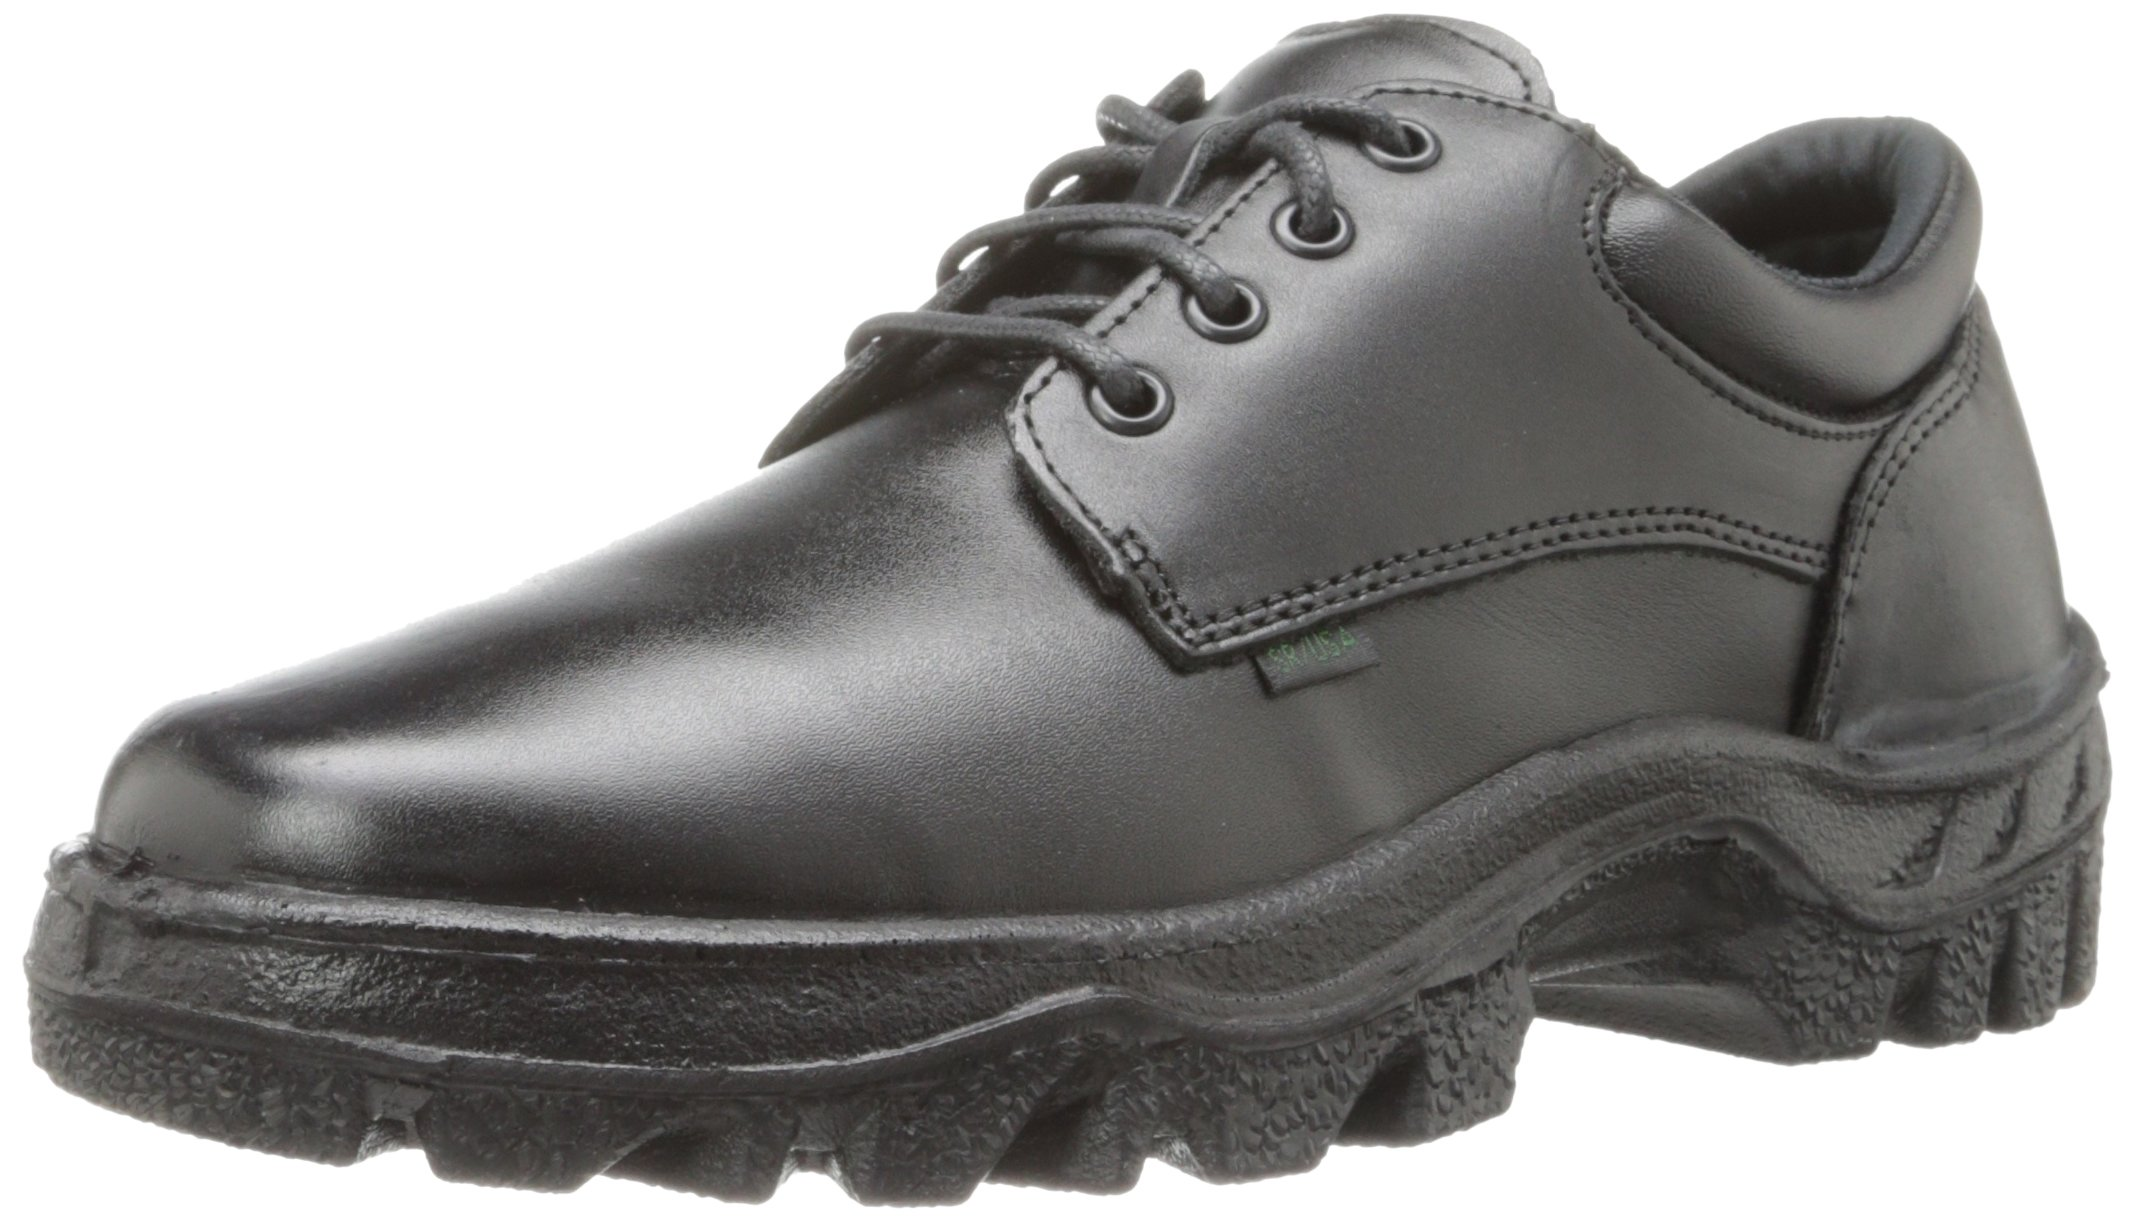 Rocky Men's Postal TMC Oxford Work Boot,Black,7.5 M US